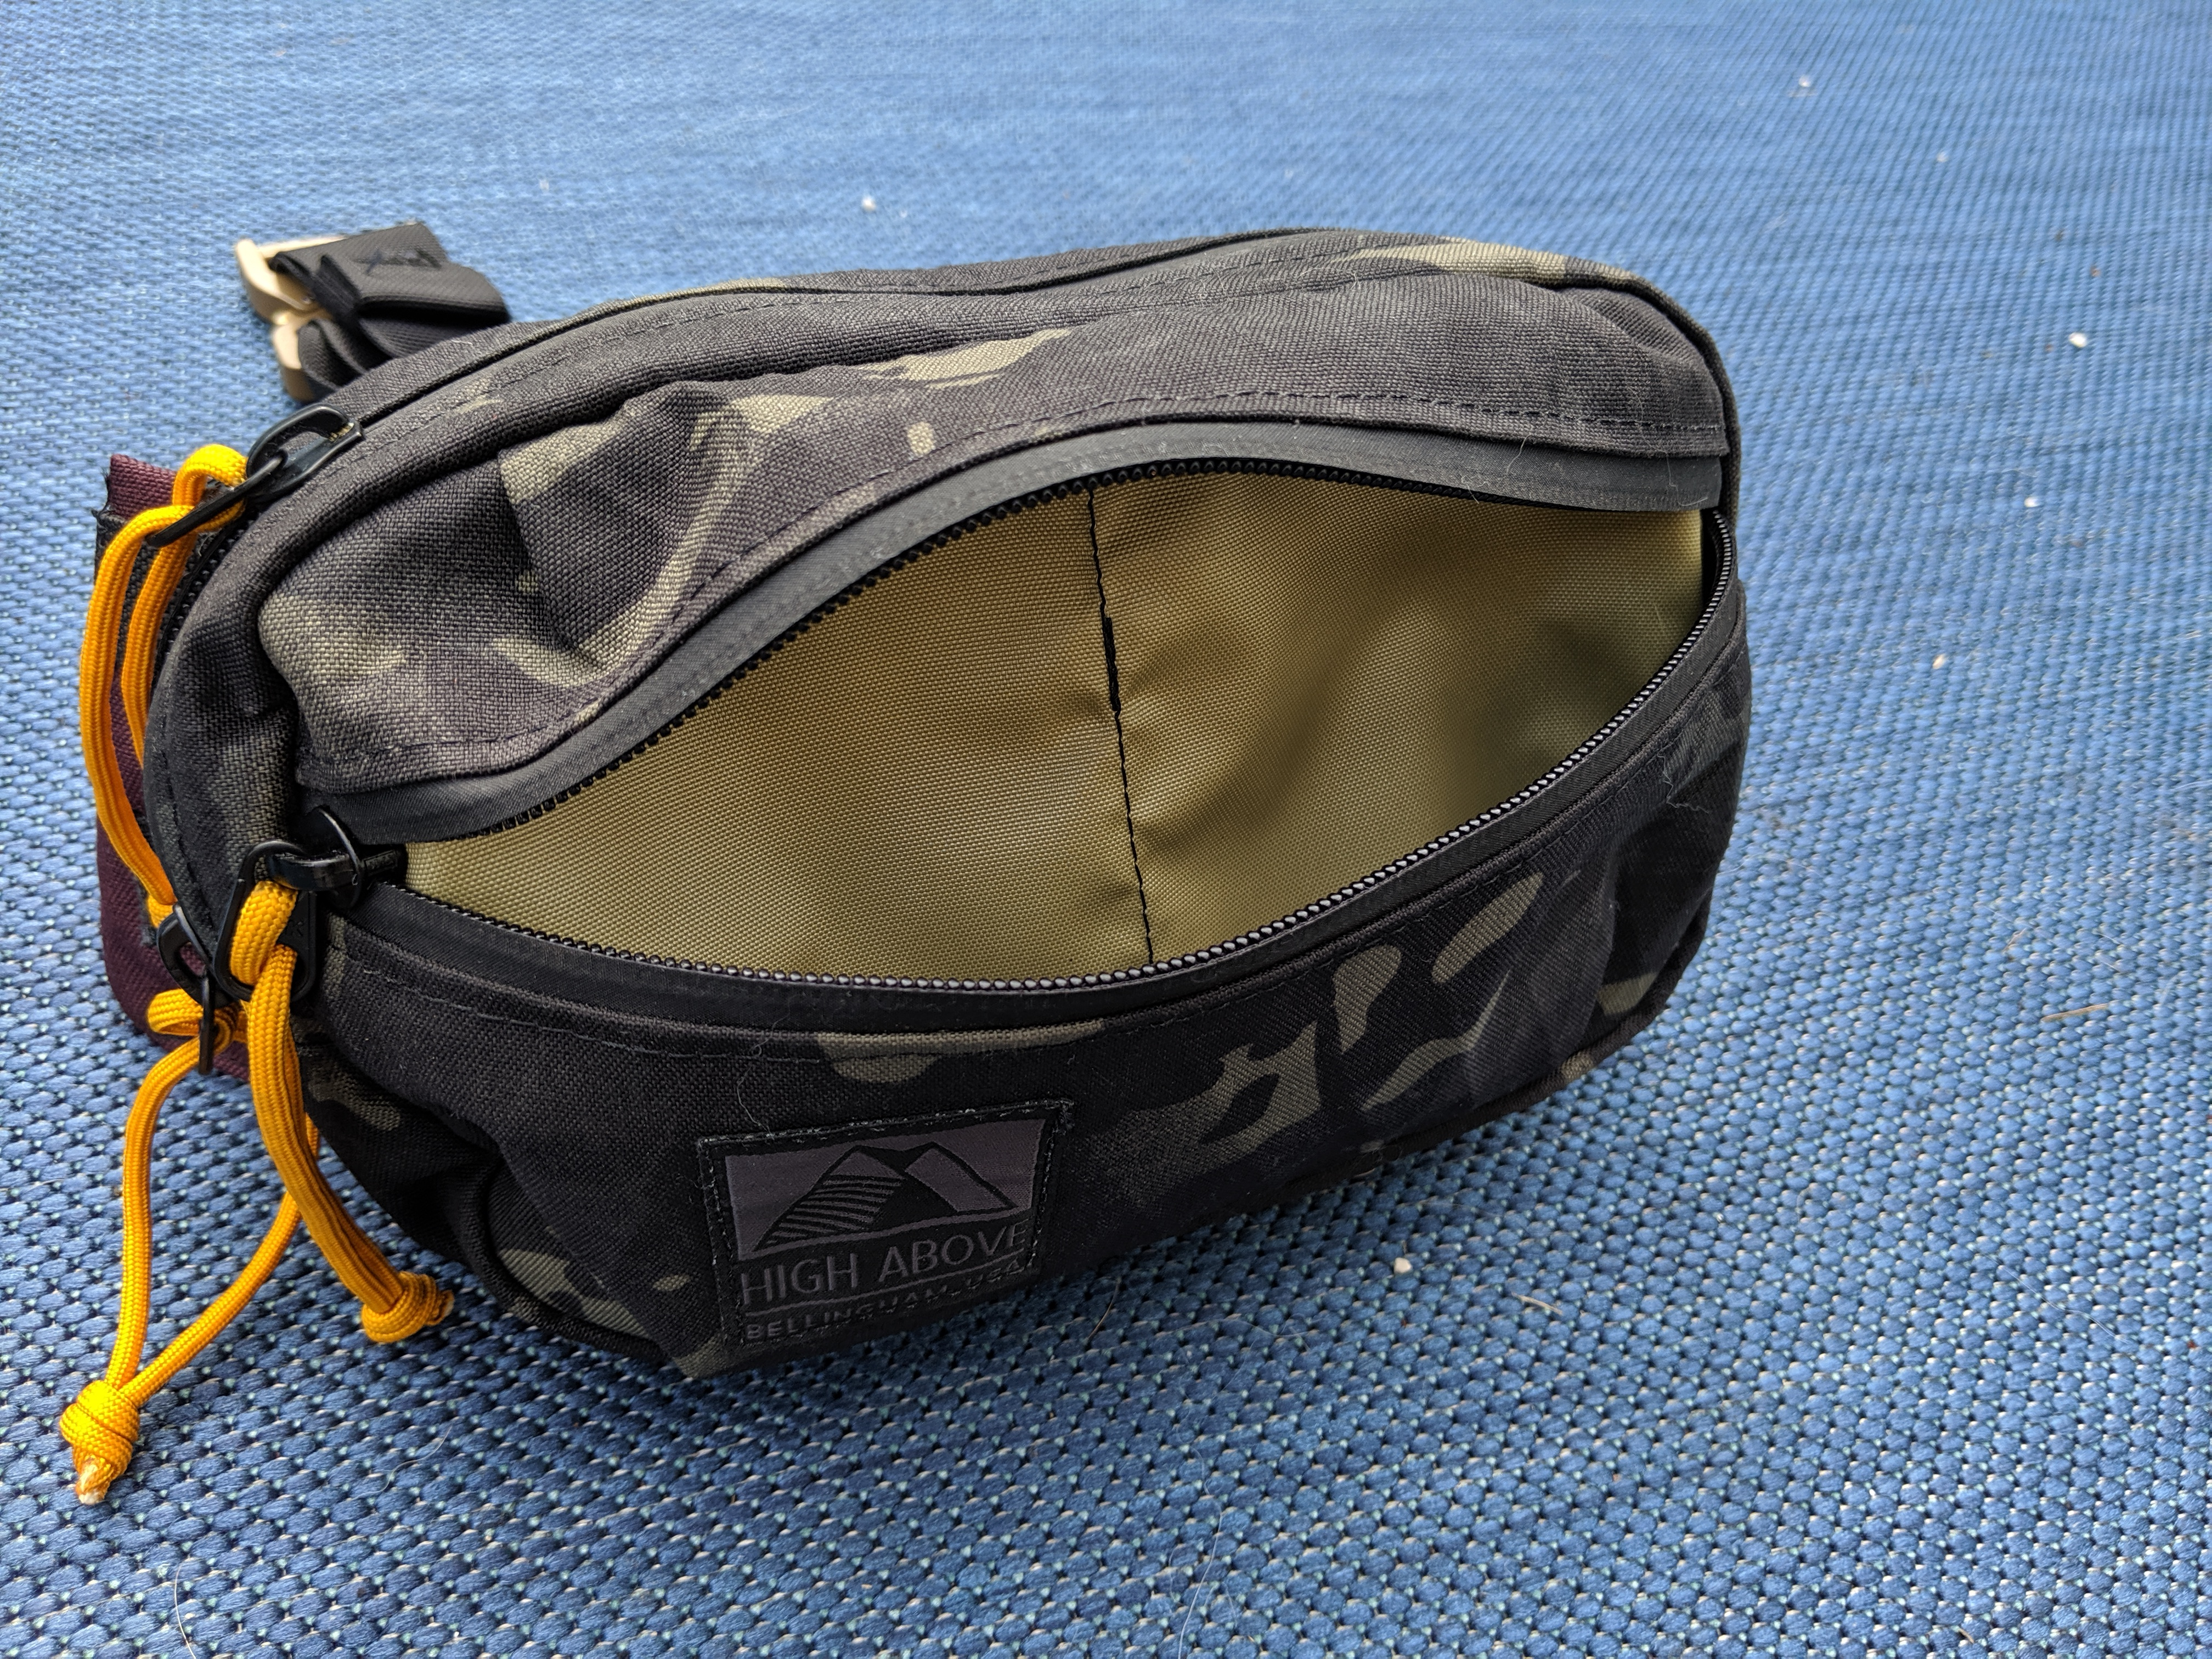 High Above Designs Lookout front pouch